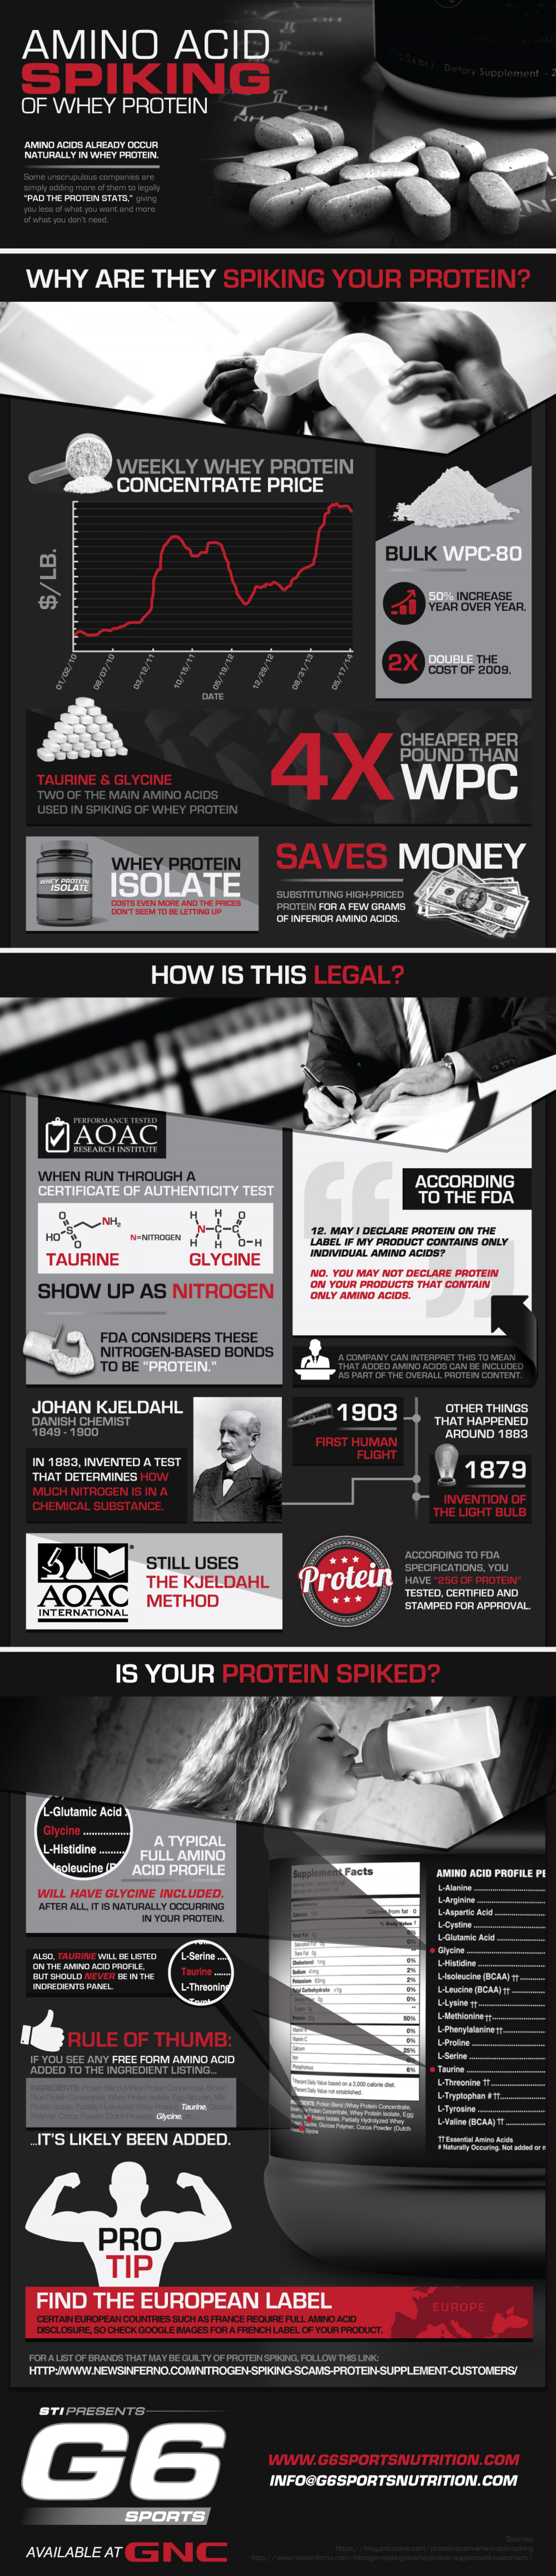 Amino Acid Spiking of Whey Protein Infographic